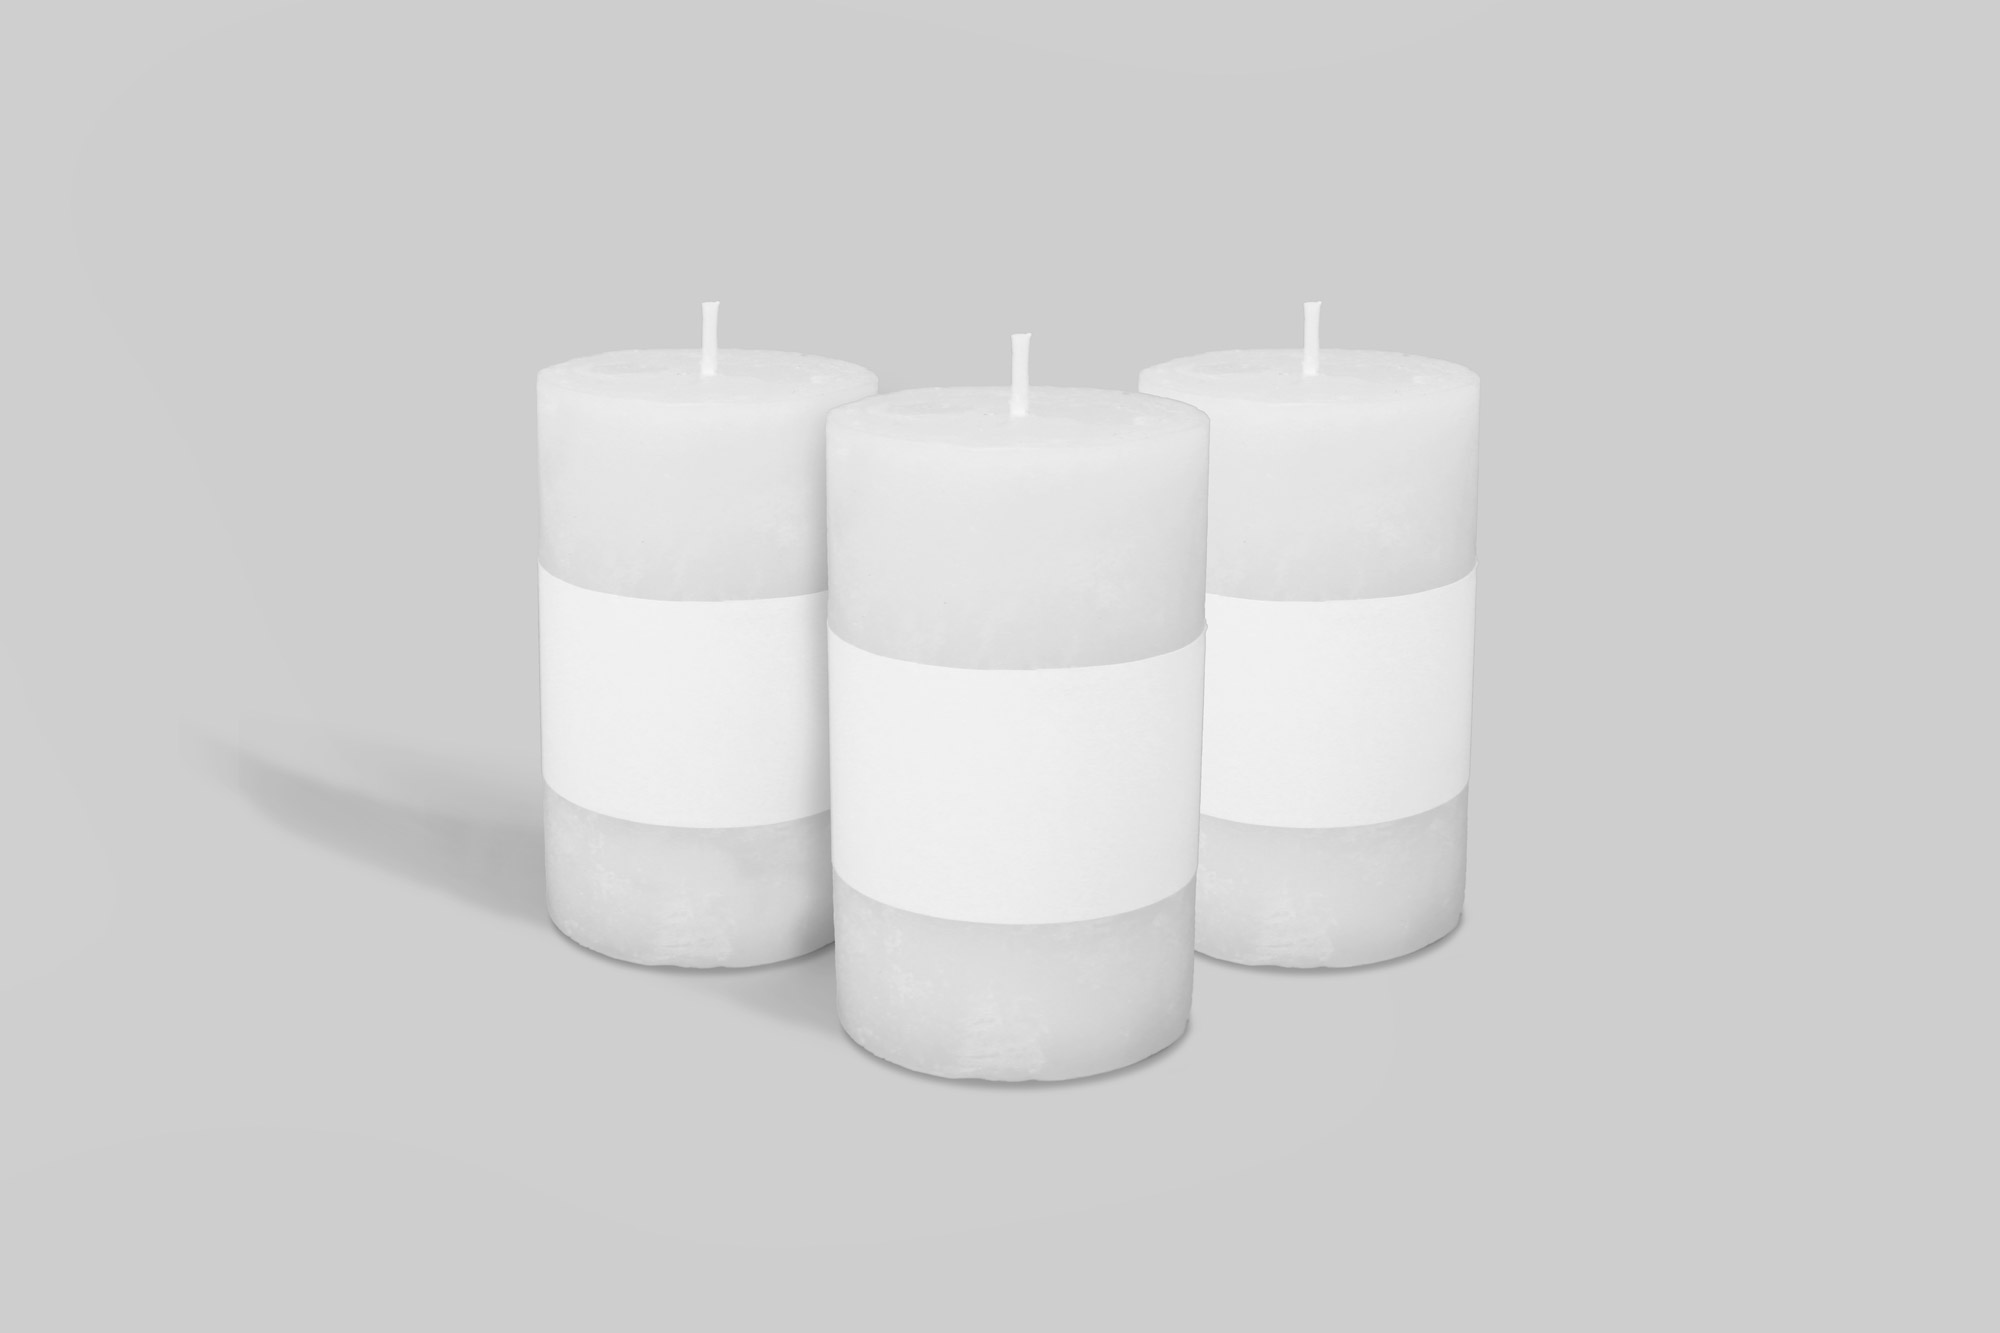 Candle Mock-up Pack #1 example image 5